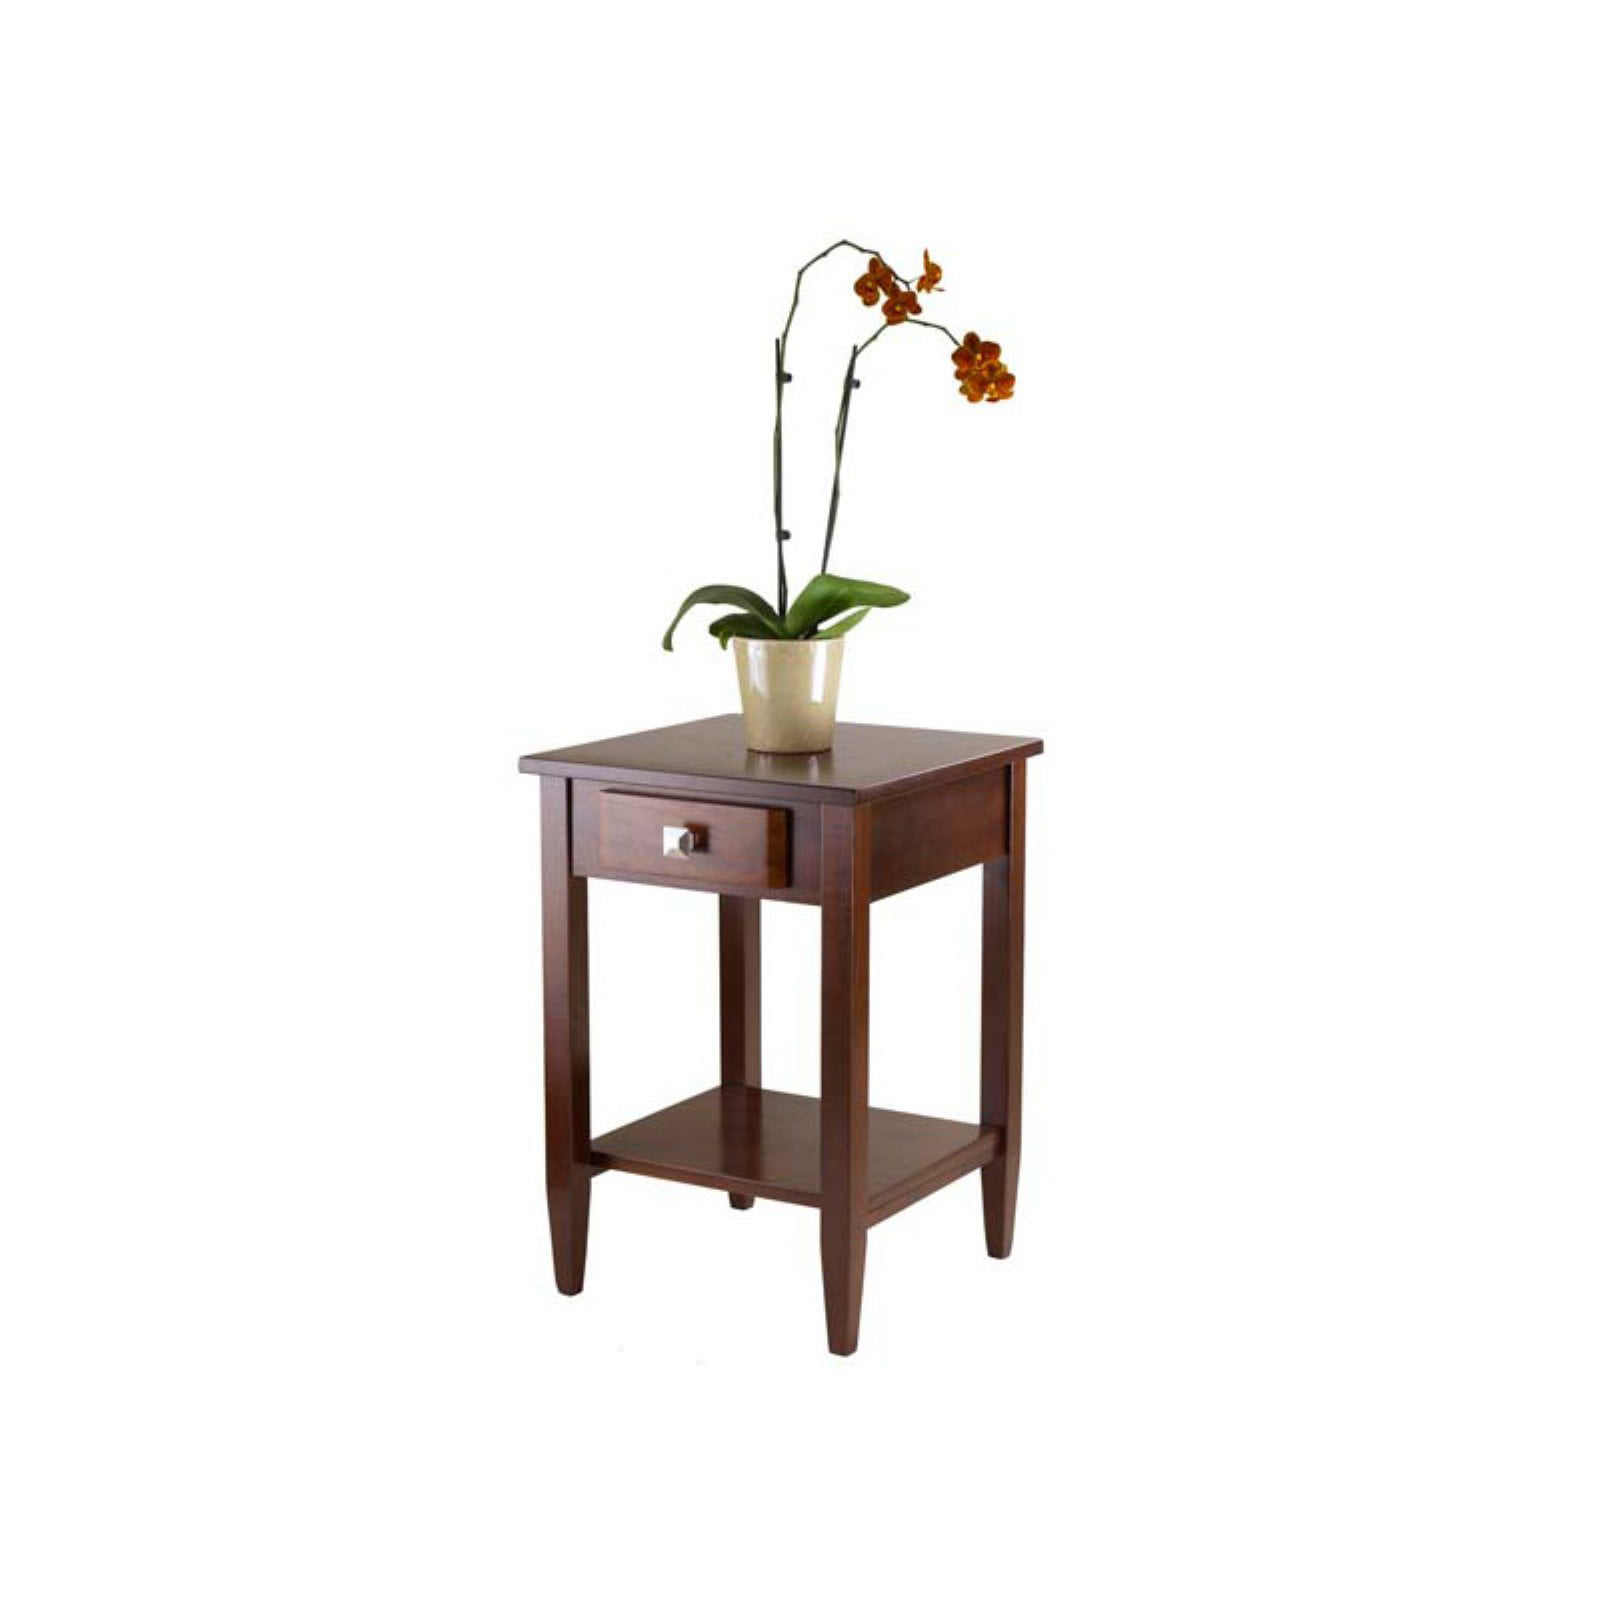 Winsome Wood Richmond Accent End Table, Walnut Finish by Winsome Trading Inc